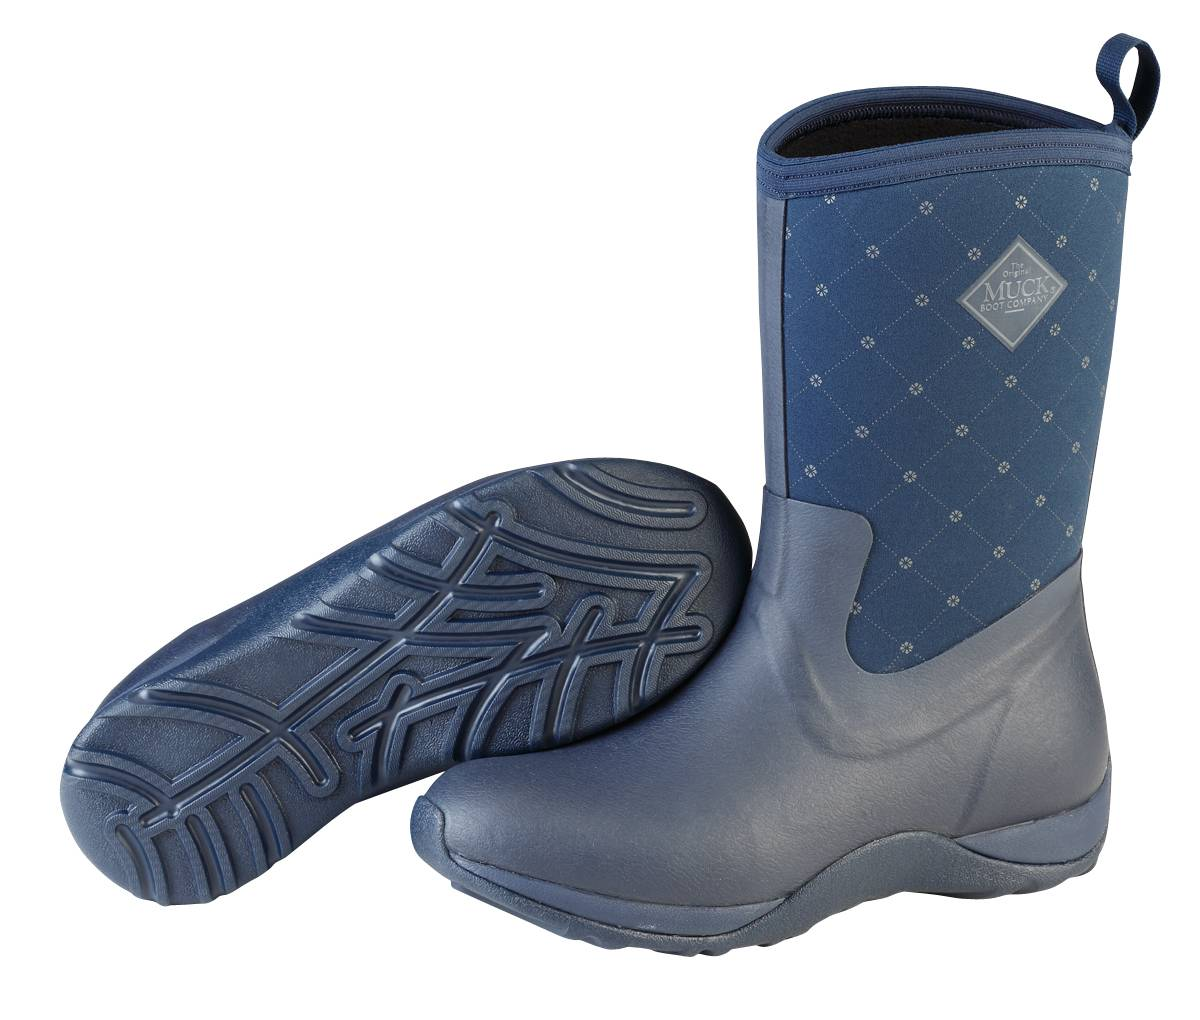 Muck Boots Arctic Weekend Mid-Height Boots - Ladies - Navy Quilt